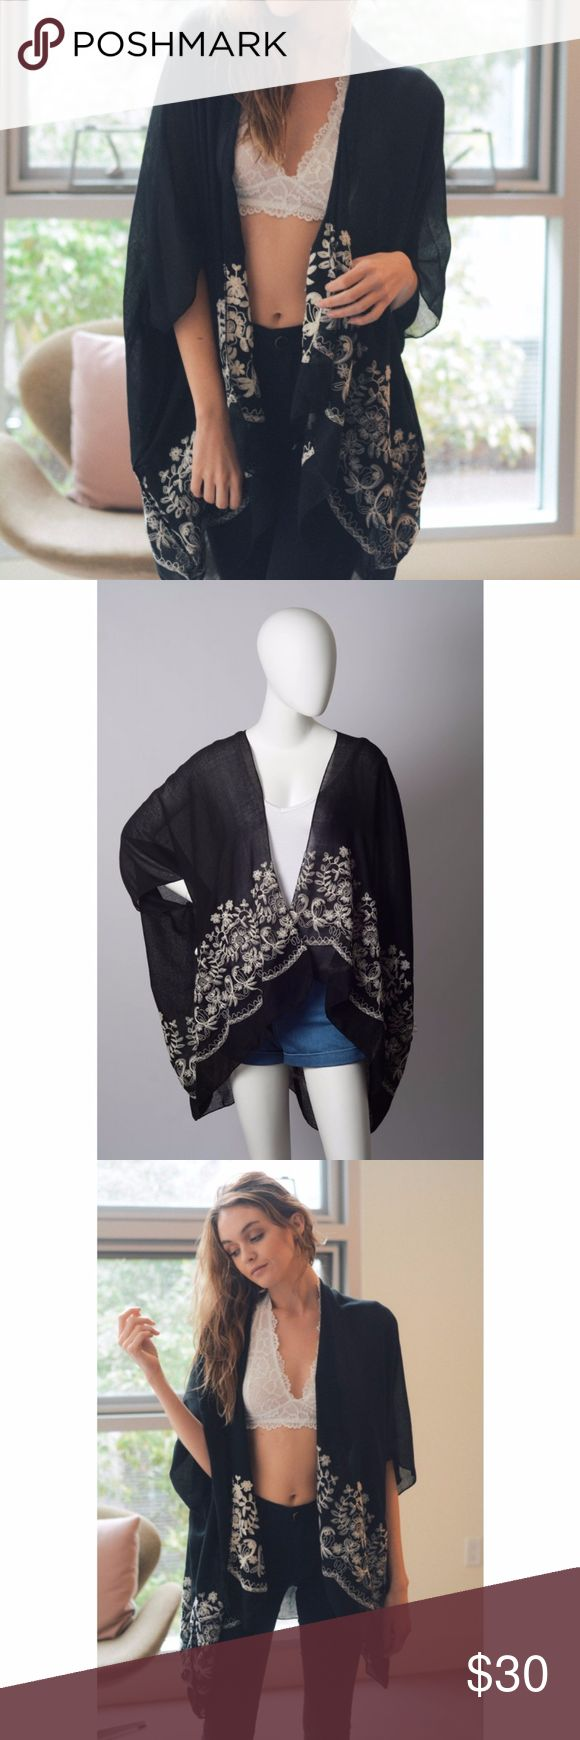 """NWT Floral Embroidered Festival Bohemian Kimono Beautiful flowy and light kimono in black with white flower embroidery. Goes great over shorts and a tank or bralette, or as a cover up at the beach!  Perfect for hot days when you need something to cover the shoulders.  35% Viscose 65% Polyester Dimension 43""""x28"""" Color: Black  tags: festival ready / bohemian / edgy / sexy / gypsy / cardigan / wrap / cover up Accessories Scarves & Wraps"""